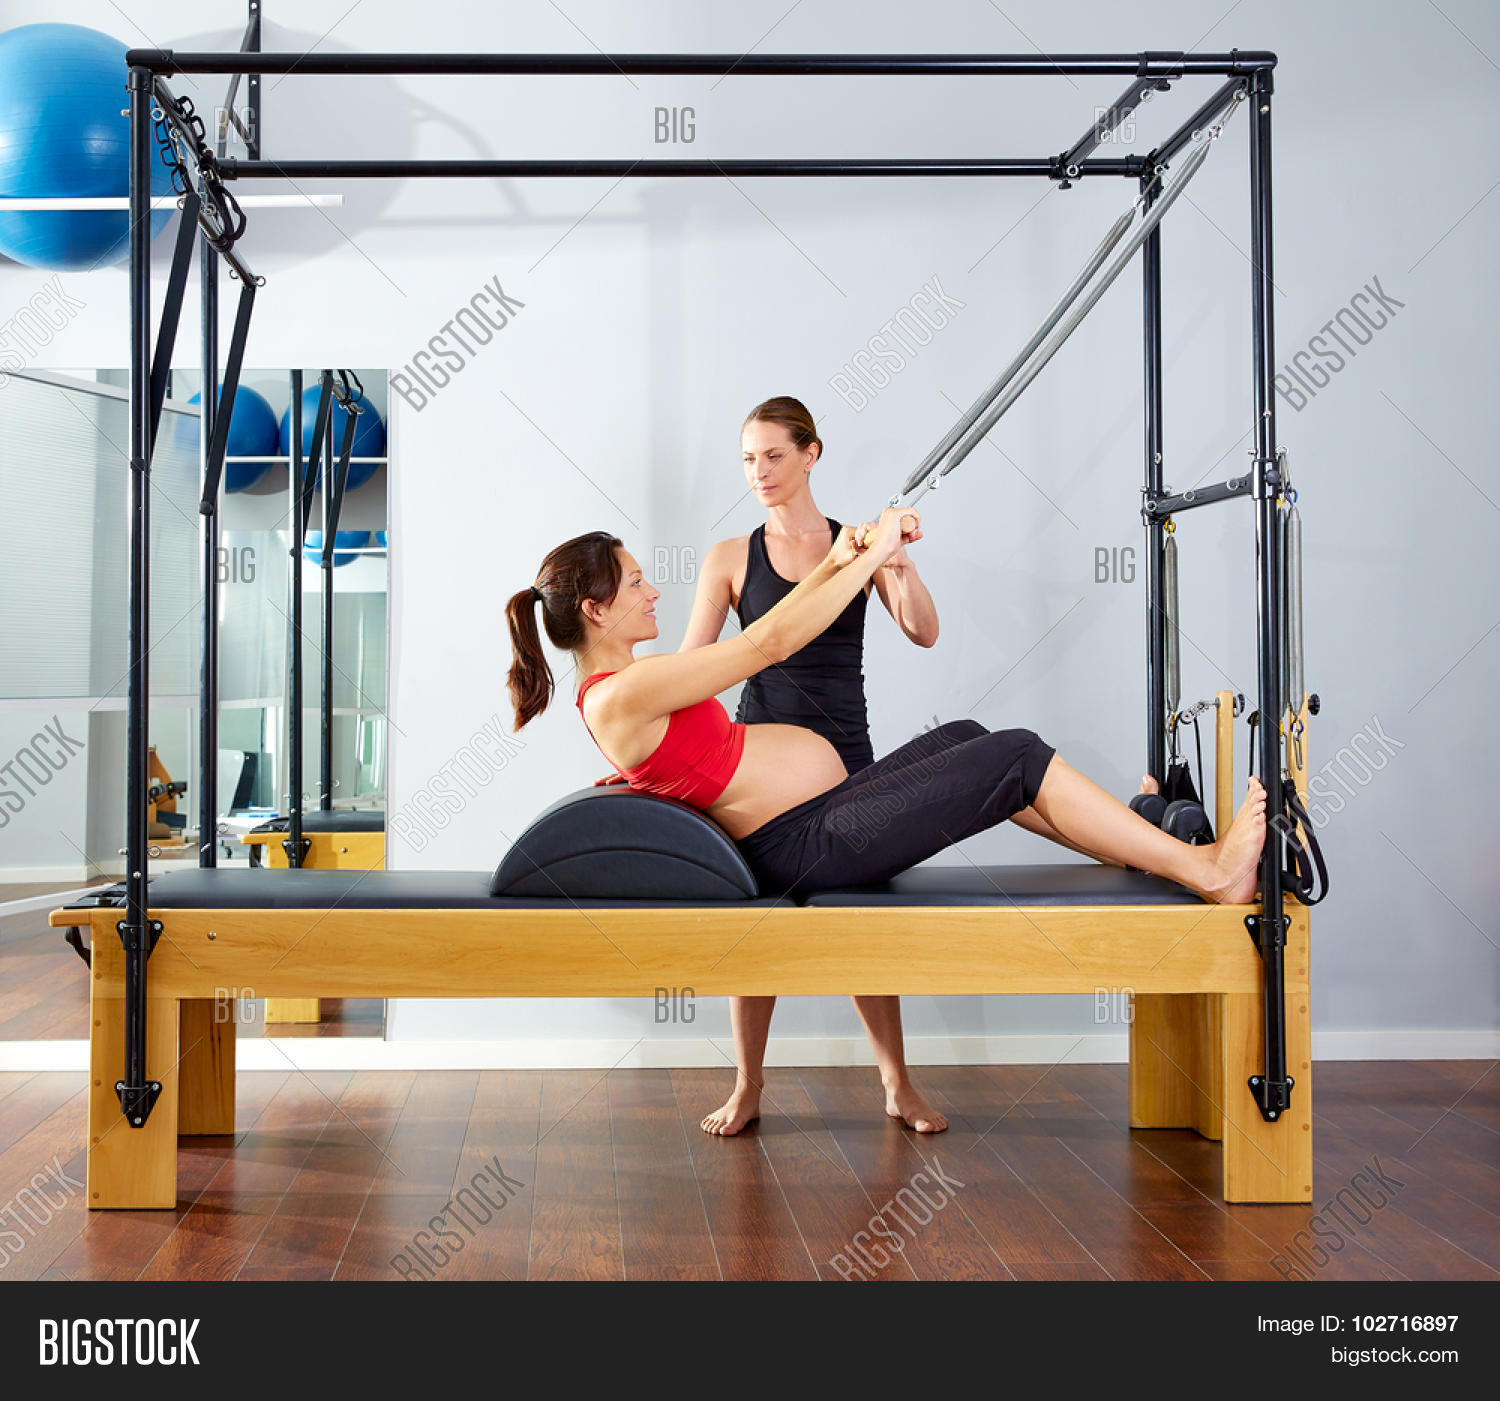 Pregnant Woman Pilates Reformer Roll Up Cadillac Exercise With Personal Trainer 102716897 Image Stock Photo